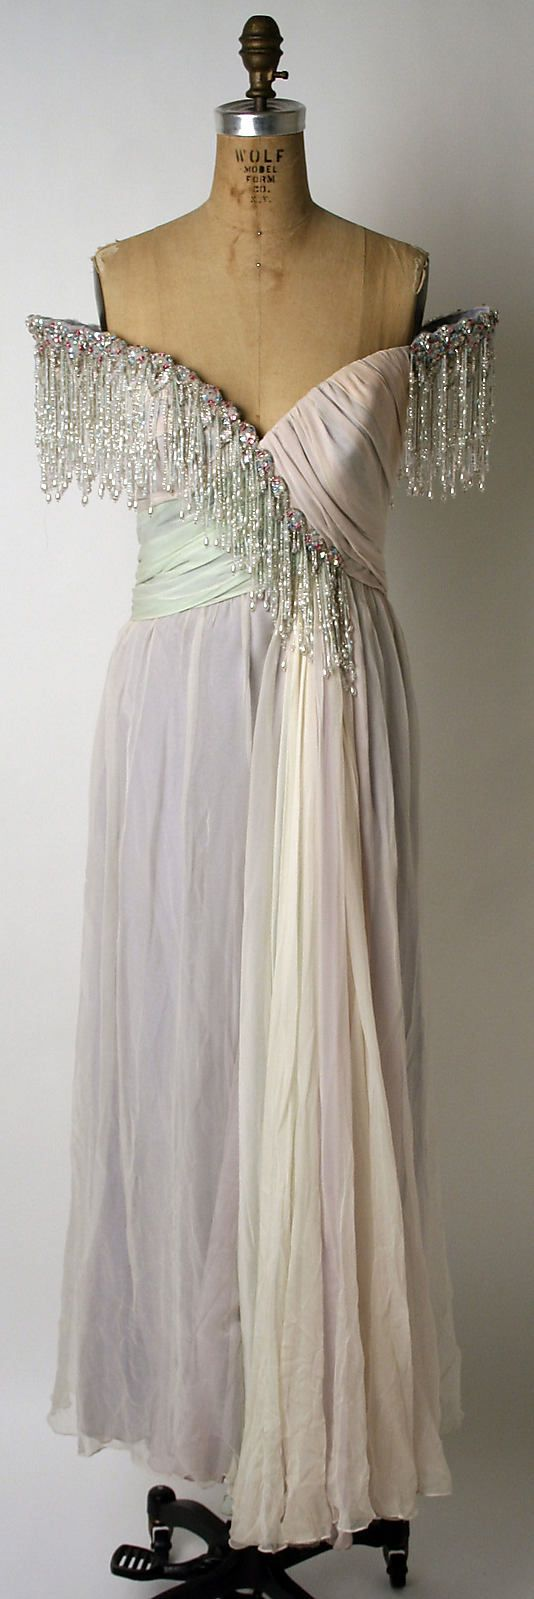 Dress, Evening, Bob Mackie  (American, born 1940)   Date: 1980s Culture: American Medium: silk